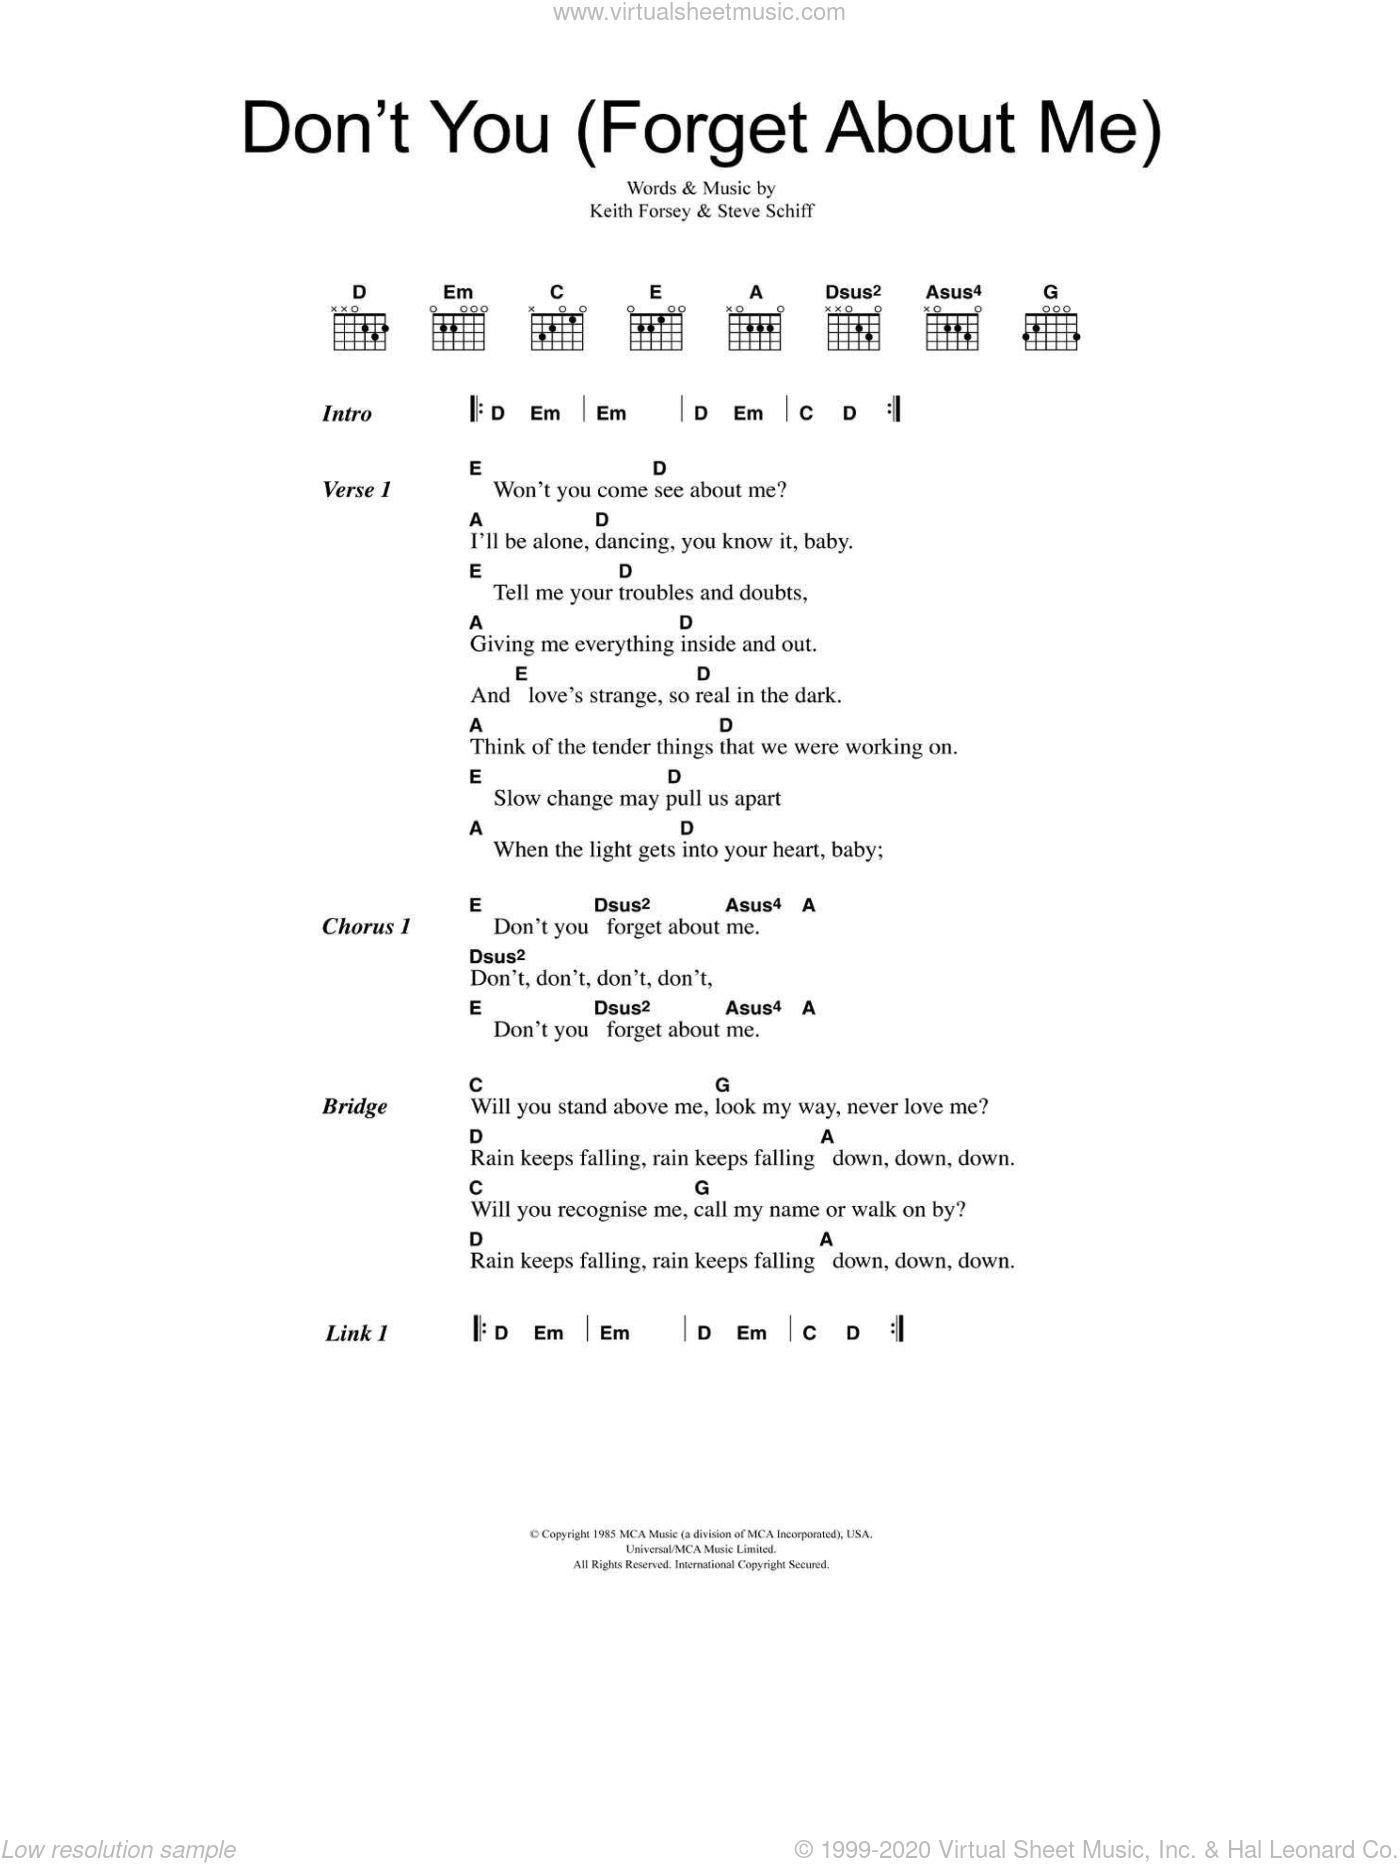 Don't You (Forget About Me) sheet music for guitar (chords) by Steve Schiff